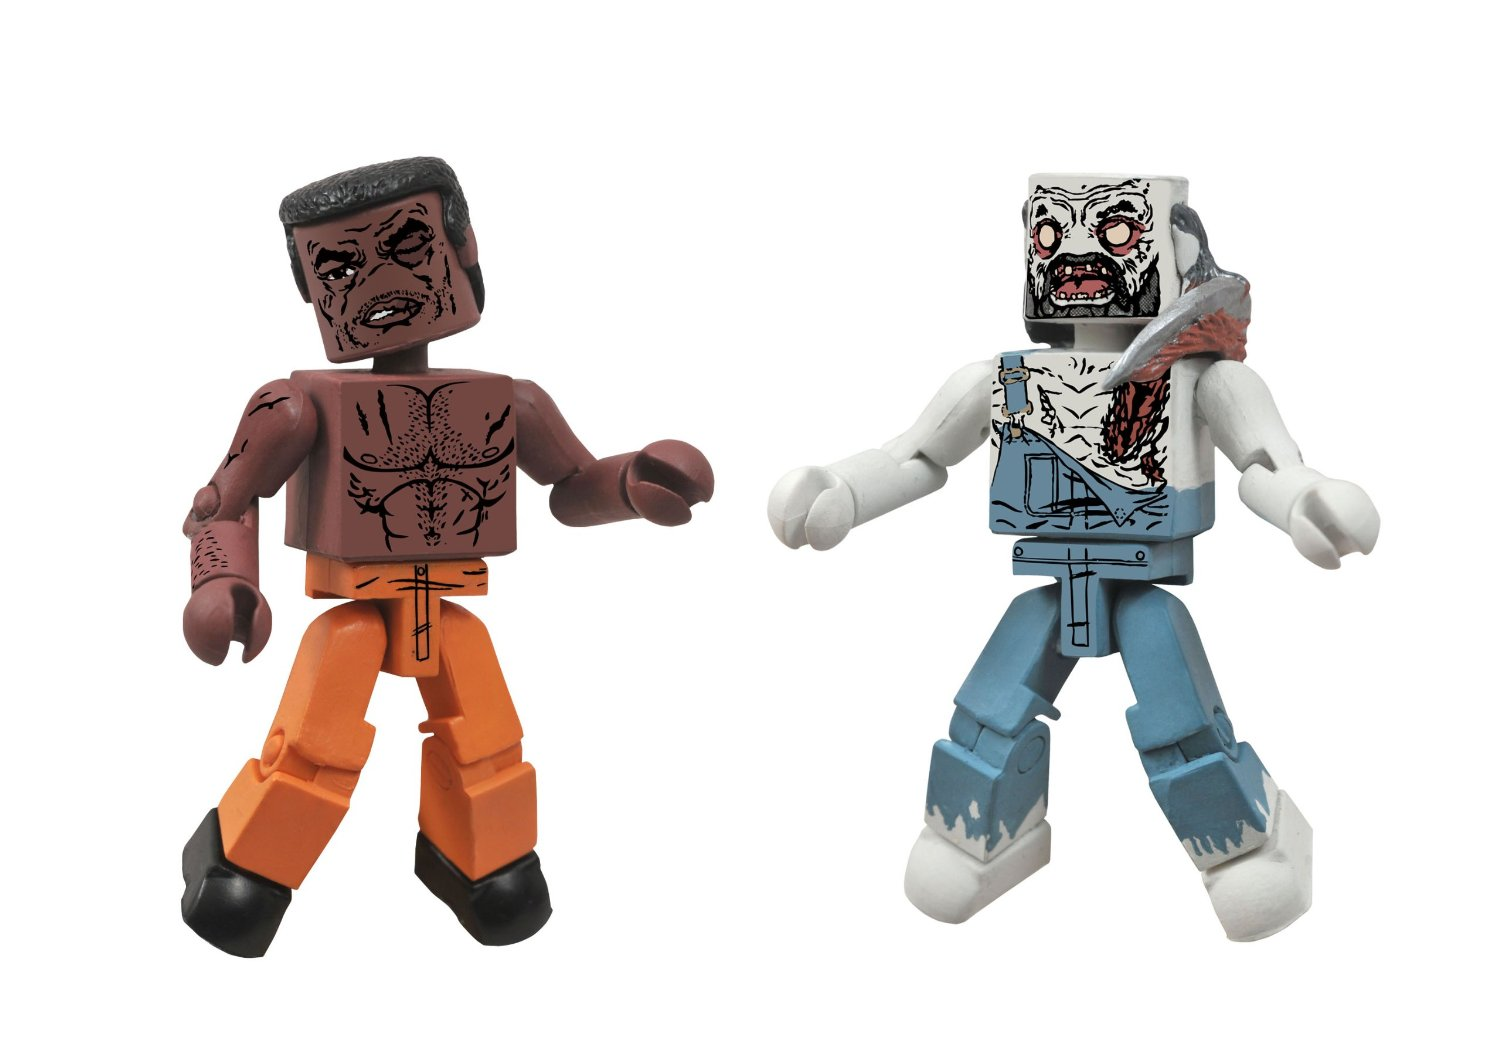 Walking Dead Minimates Tyreese and Farmer Zombie